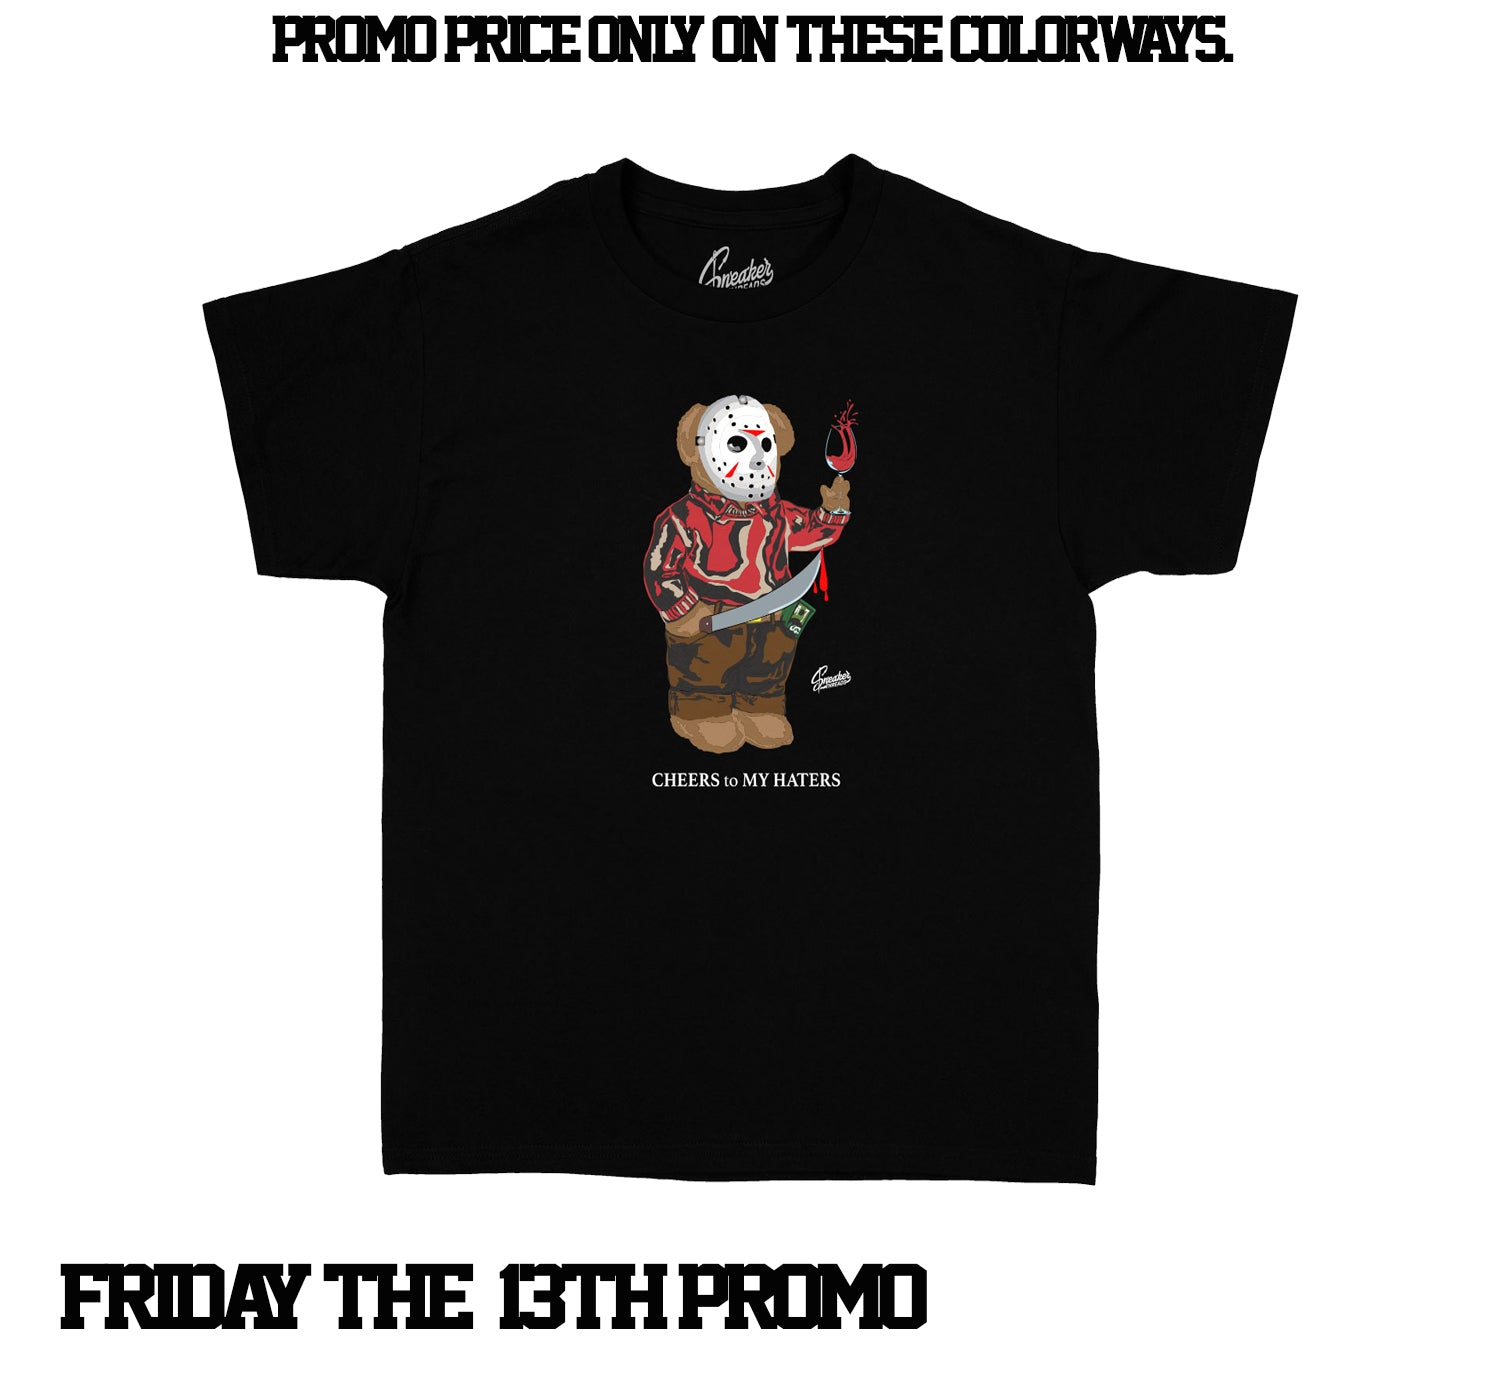 Kids - Jason Bear Shirt - Friday The 13th Special